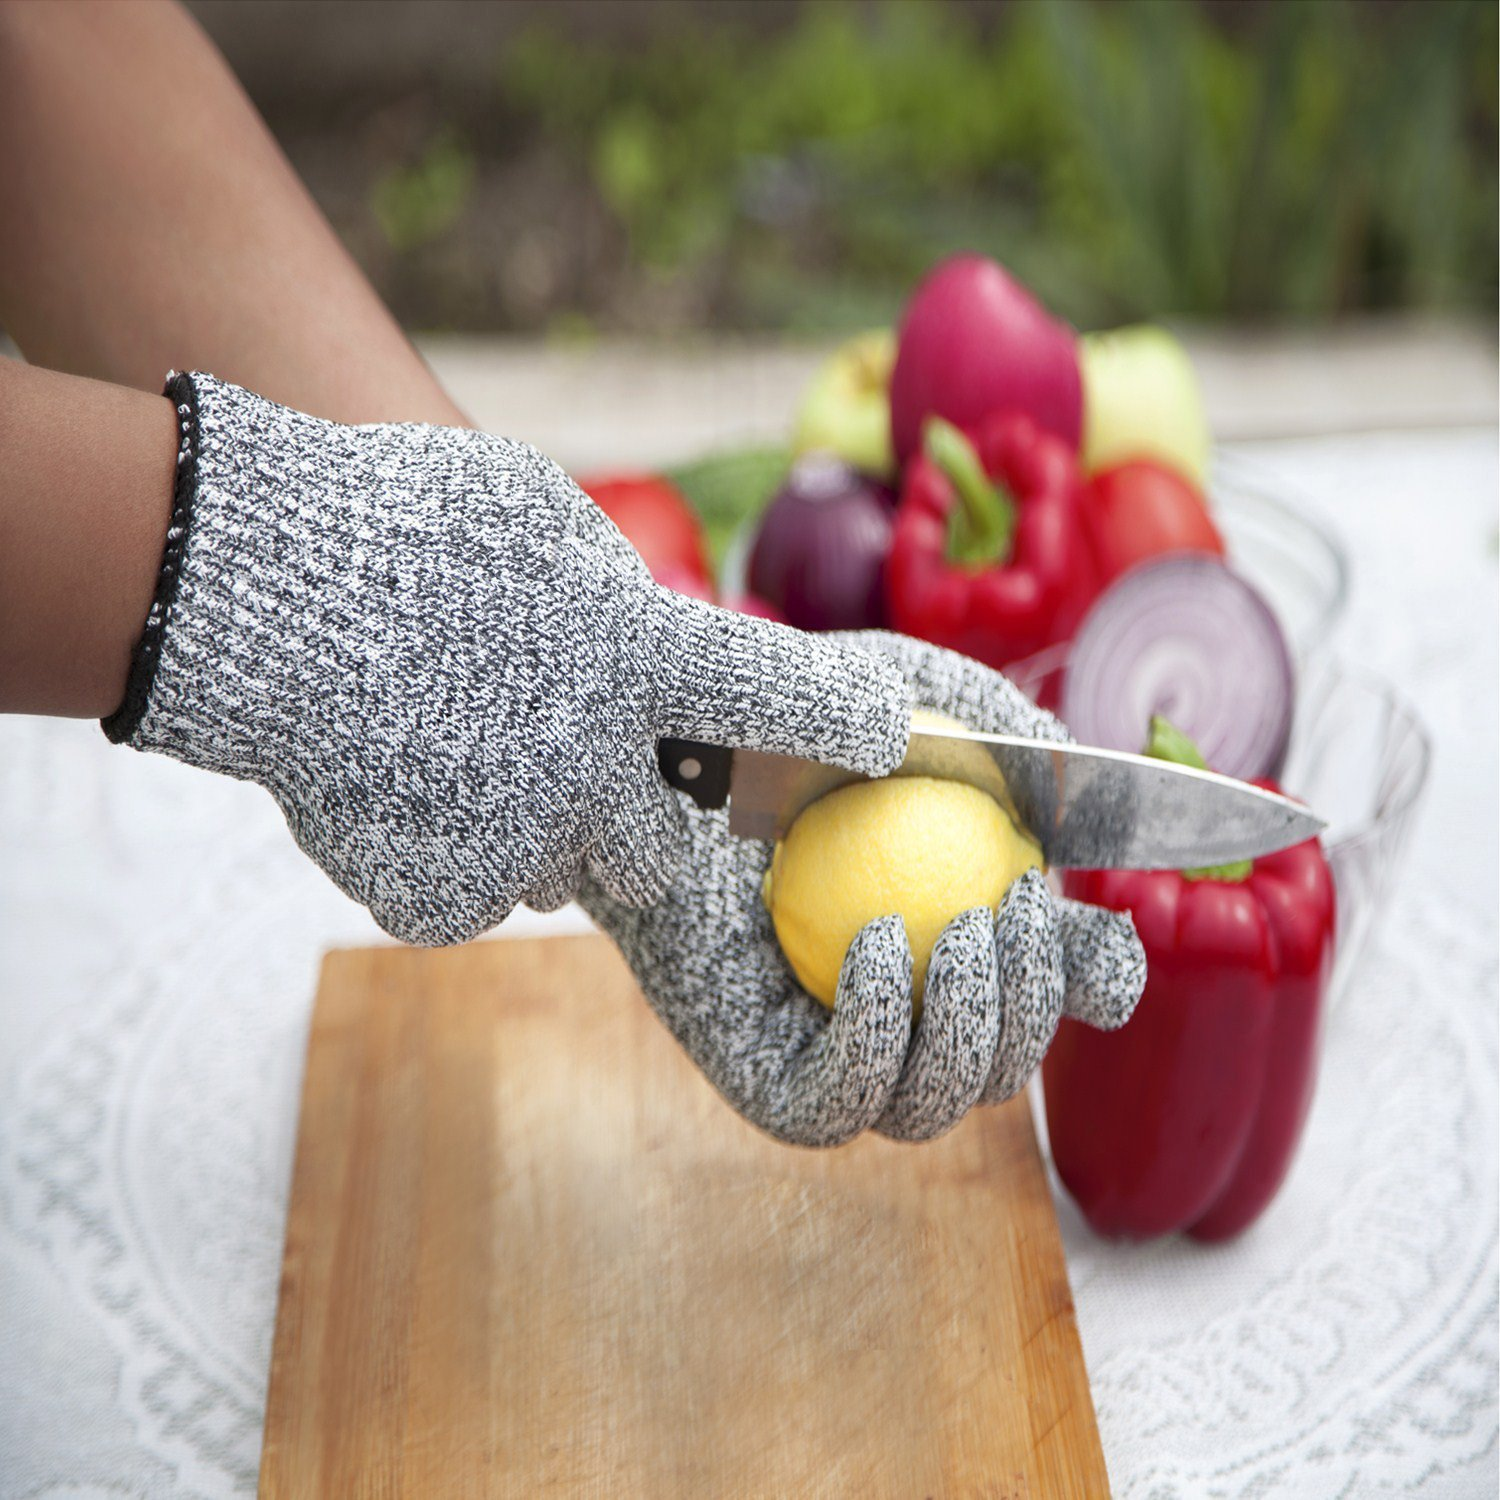 YiZYiF Cut Resistant Gloves Best Food Grade Kitchen Level 5 Cut Protection Knit Safety for Cooking, Working, Wood carving by YiZYiF (Image #3)